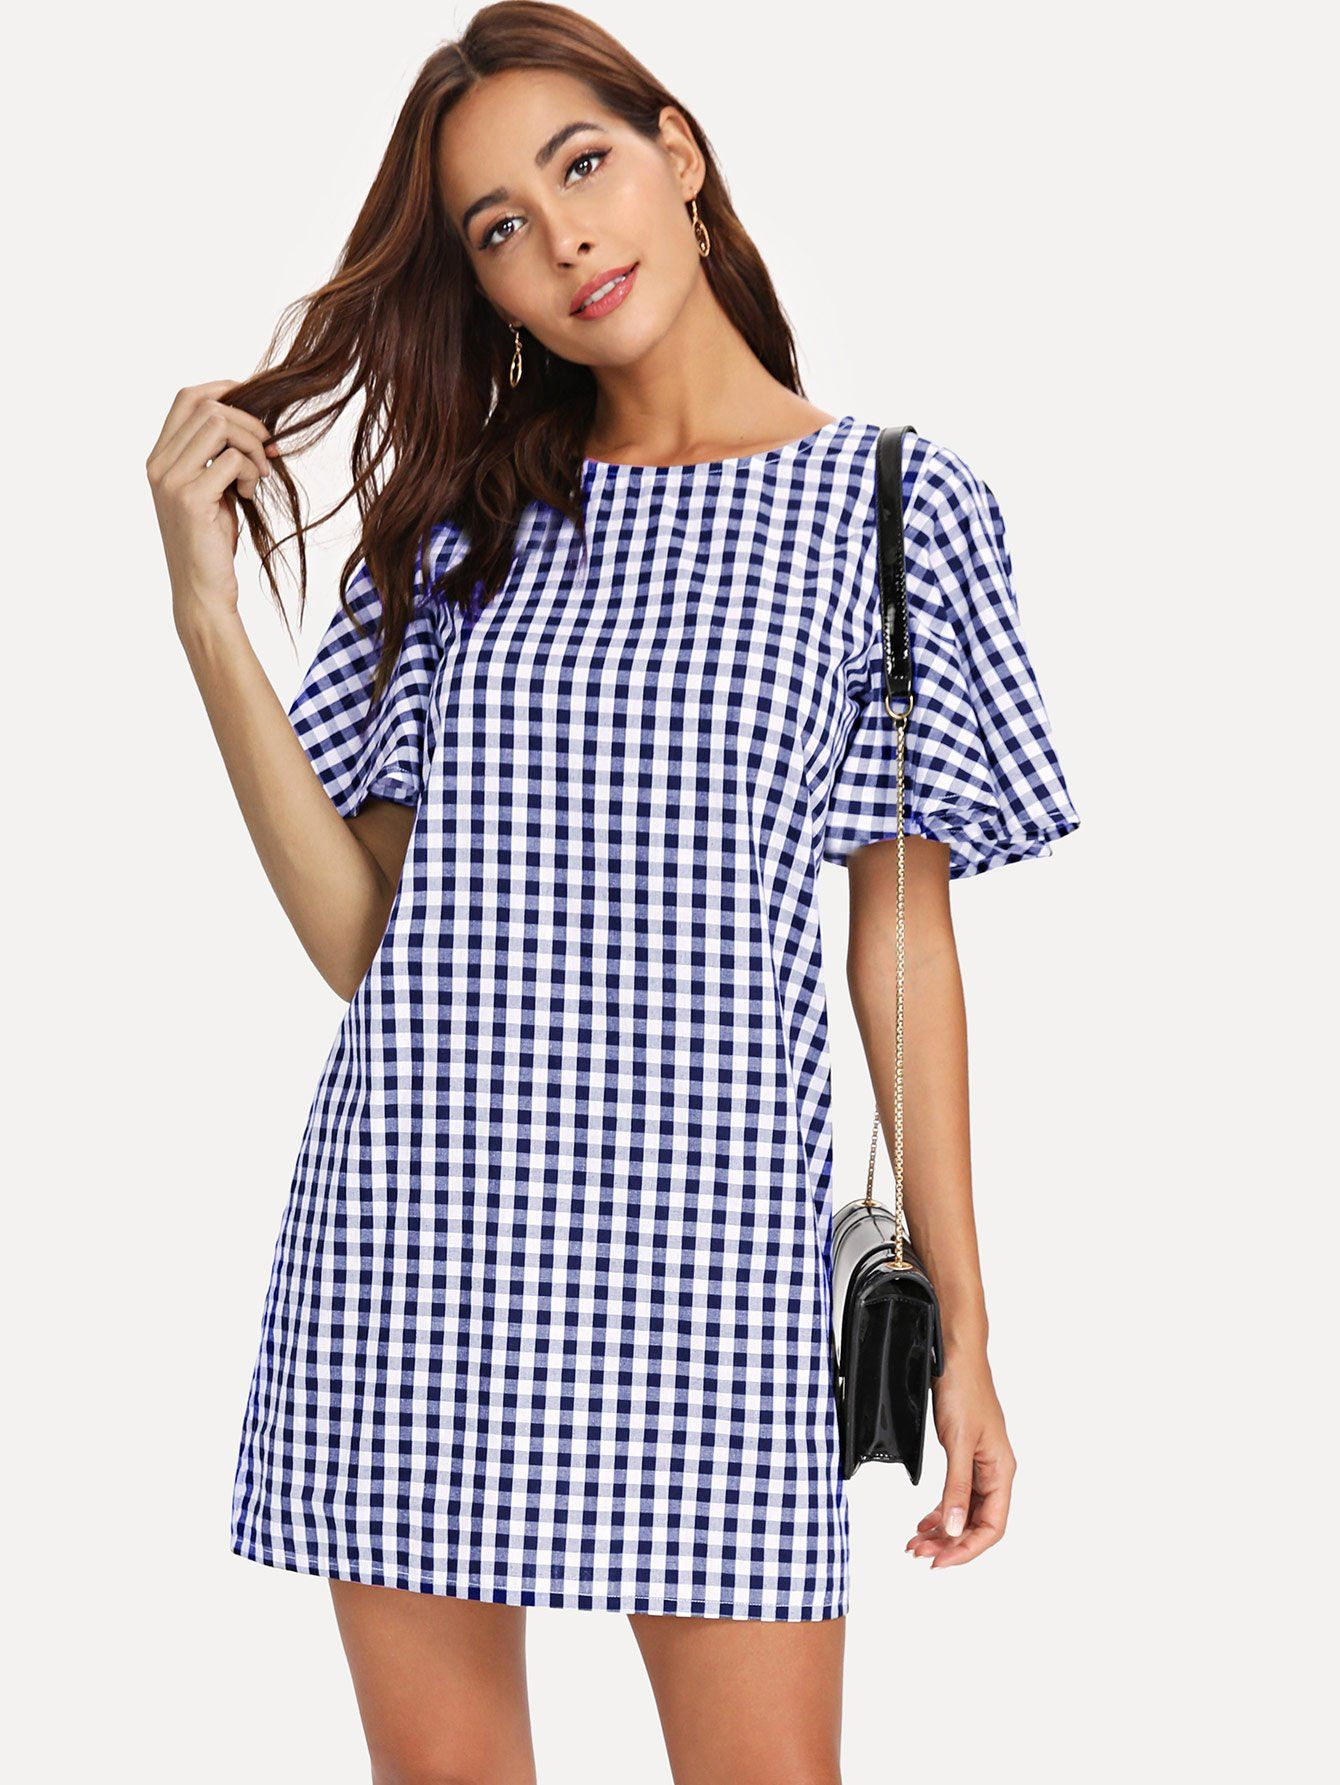 Flutter Sleeve Gingham Print Dress Outfits Casual Dresses Simple Dresses